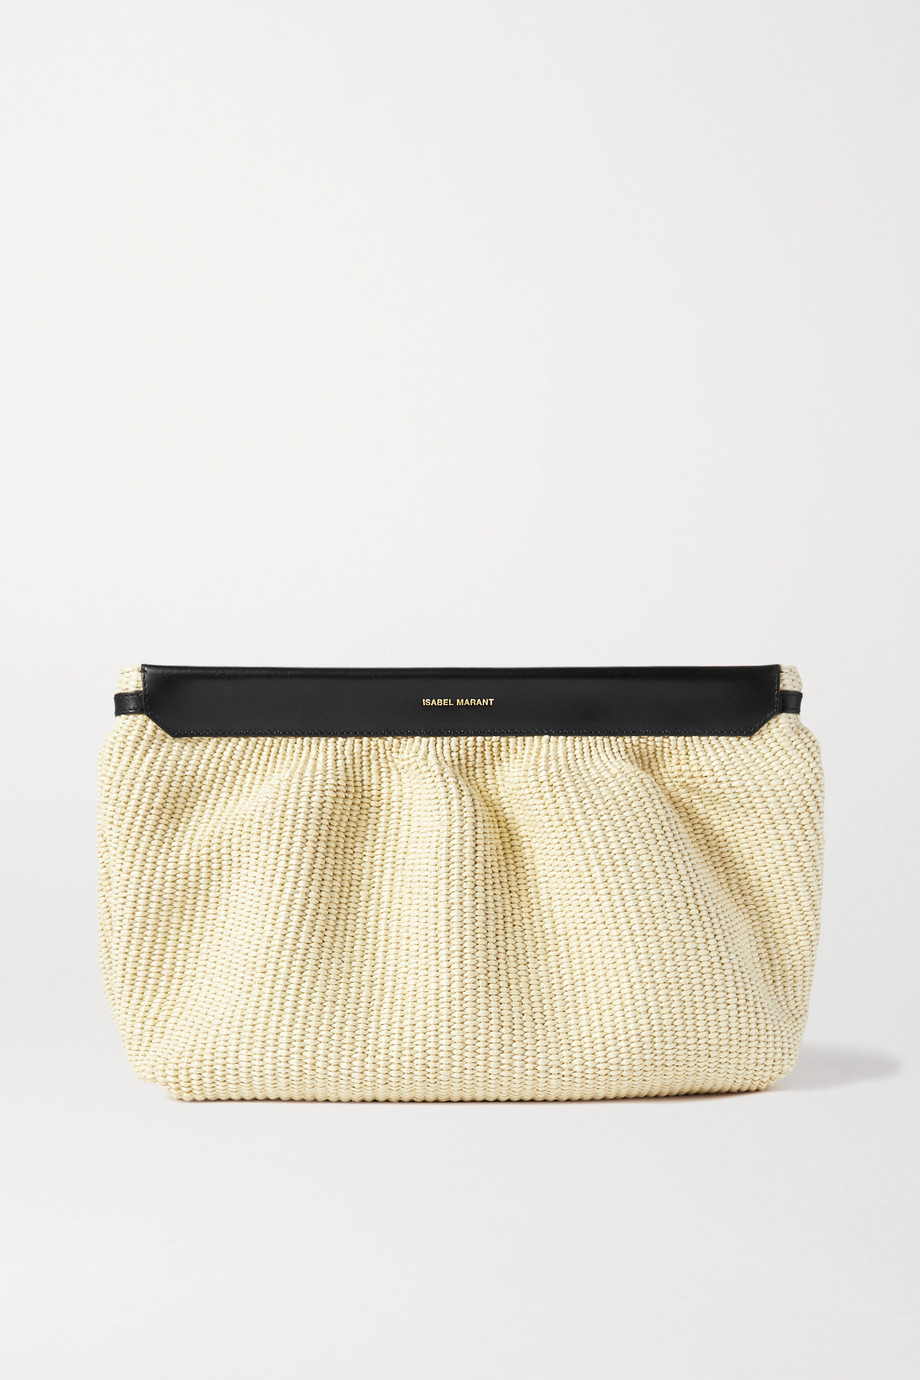 ISABEL MARANT Luz leather-trimmed raffia clutch